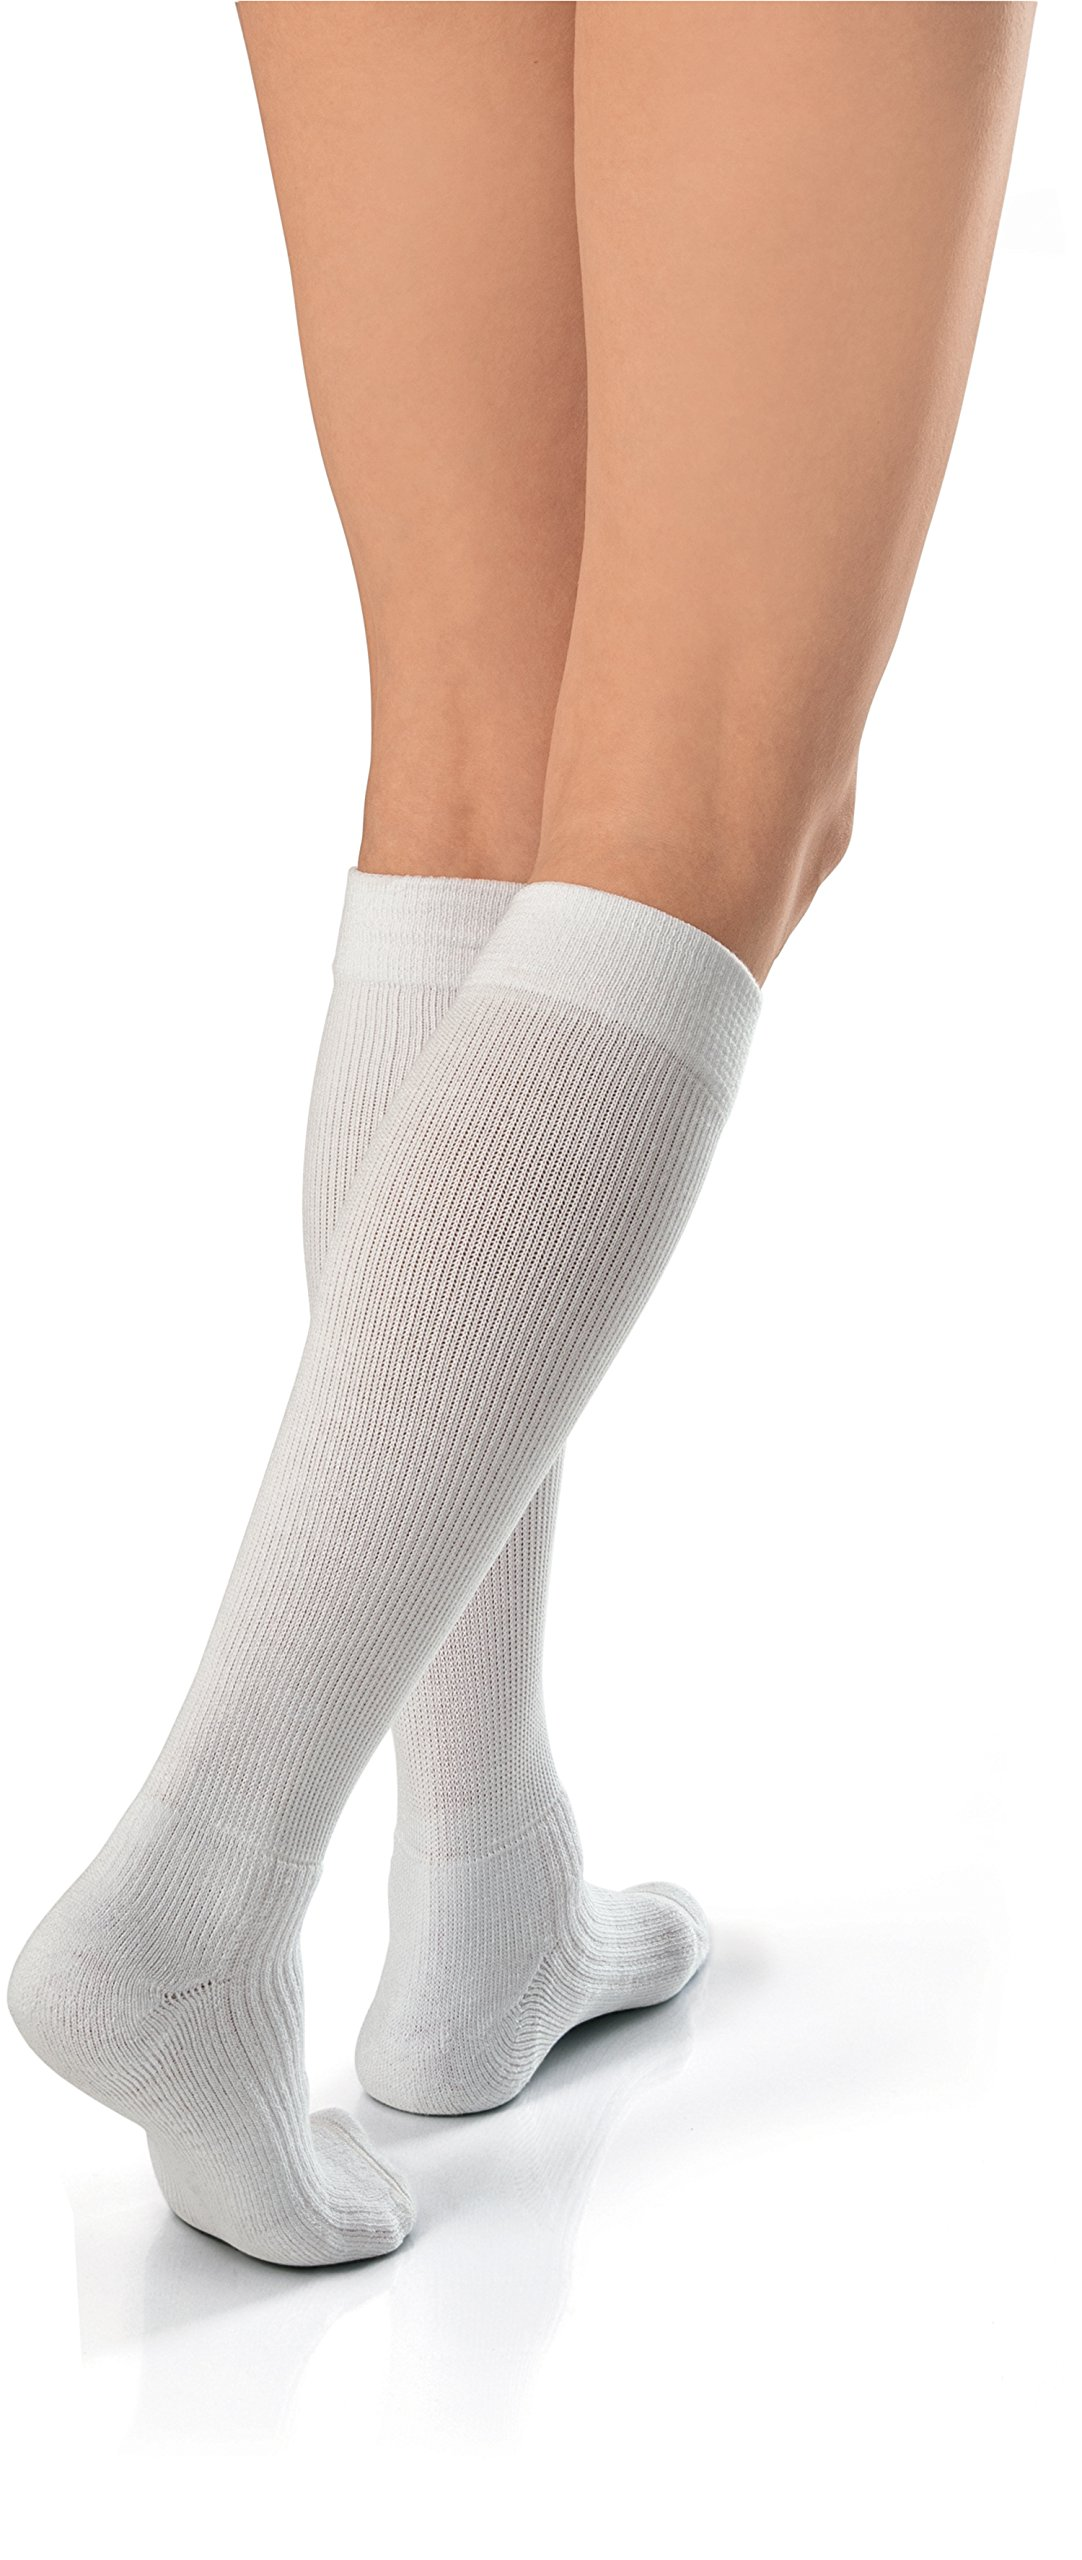 JOBST Activewear 30-40 mmHg Knee High Compression Socks, Small, Cool White